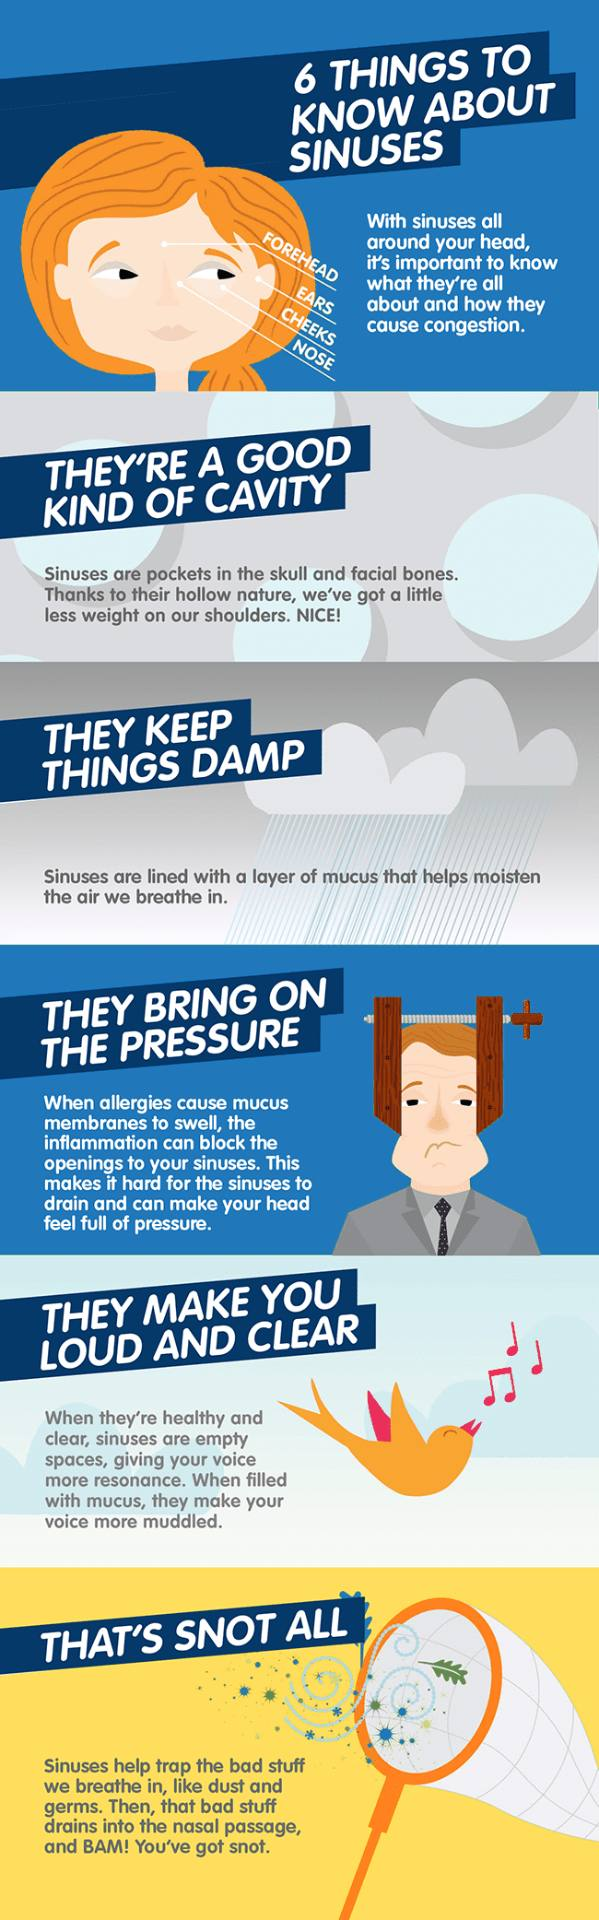 6 things about Sinuses - Infographic